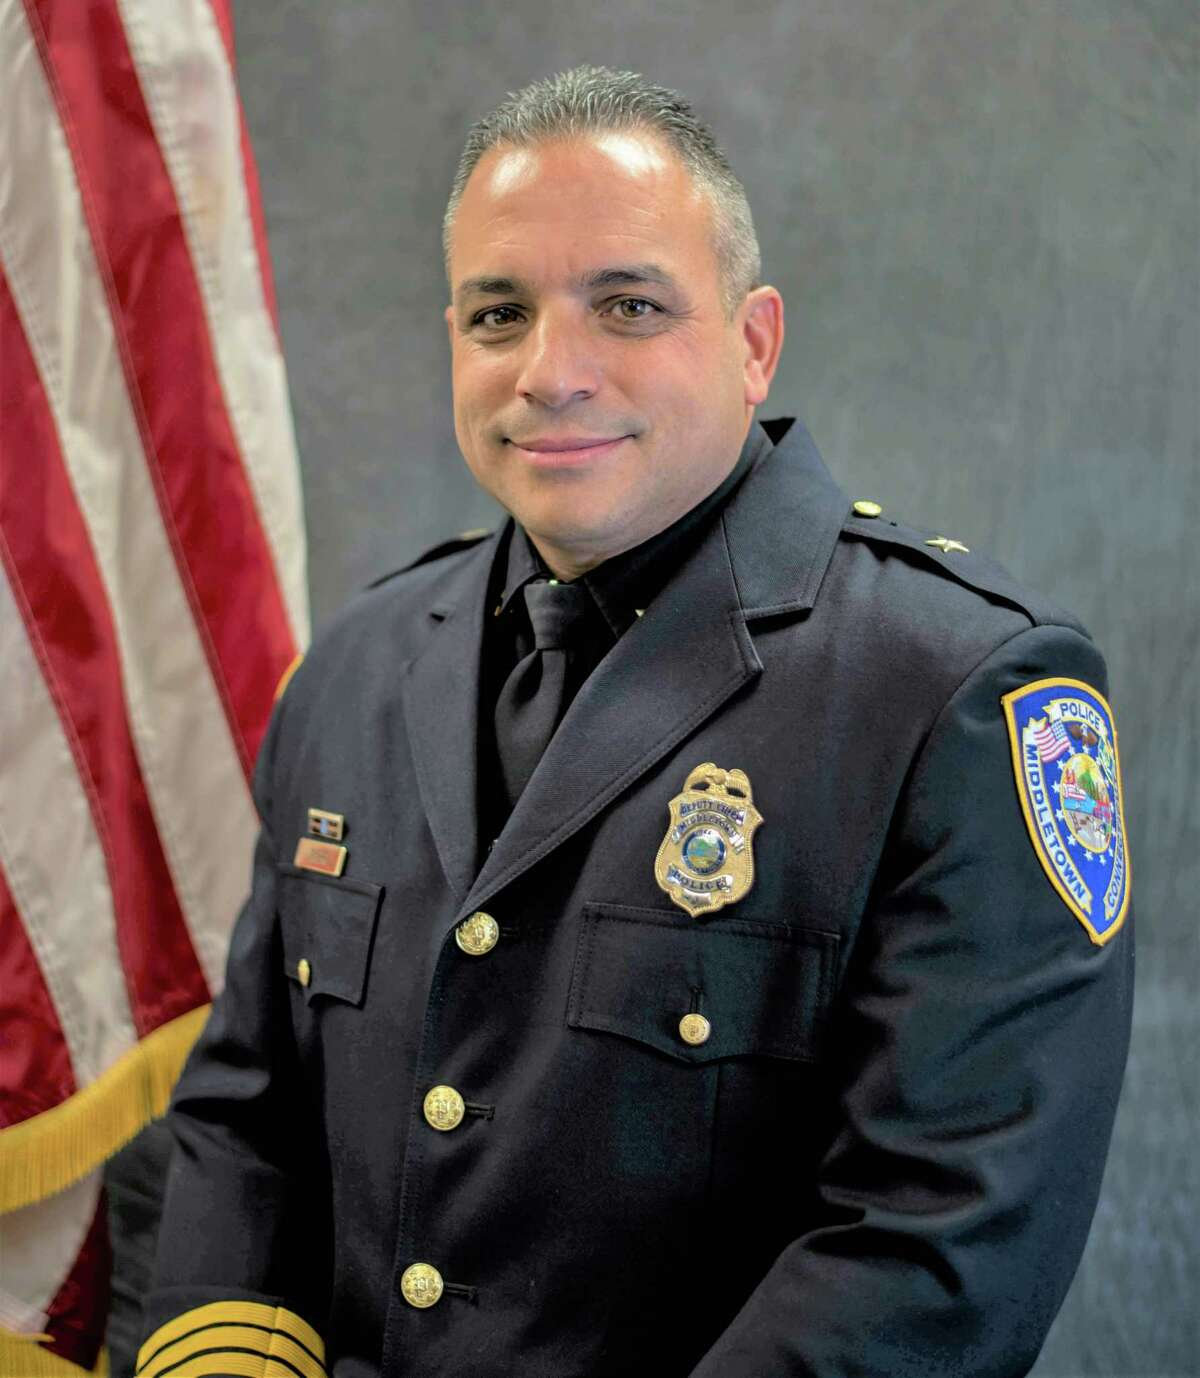 Michael Timbro is Middletown's acting police chief.